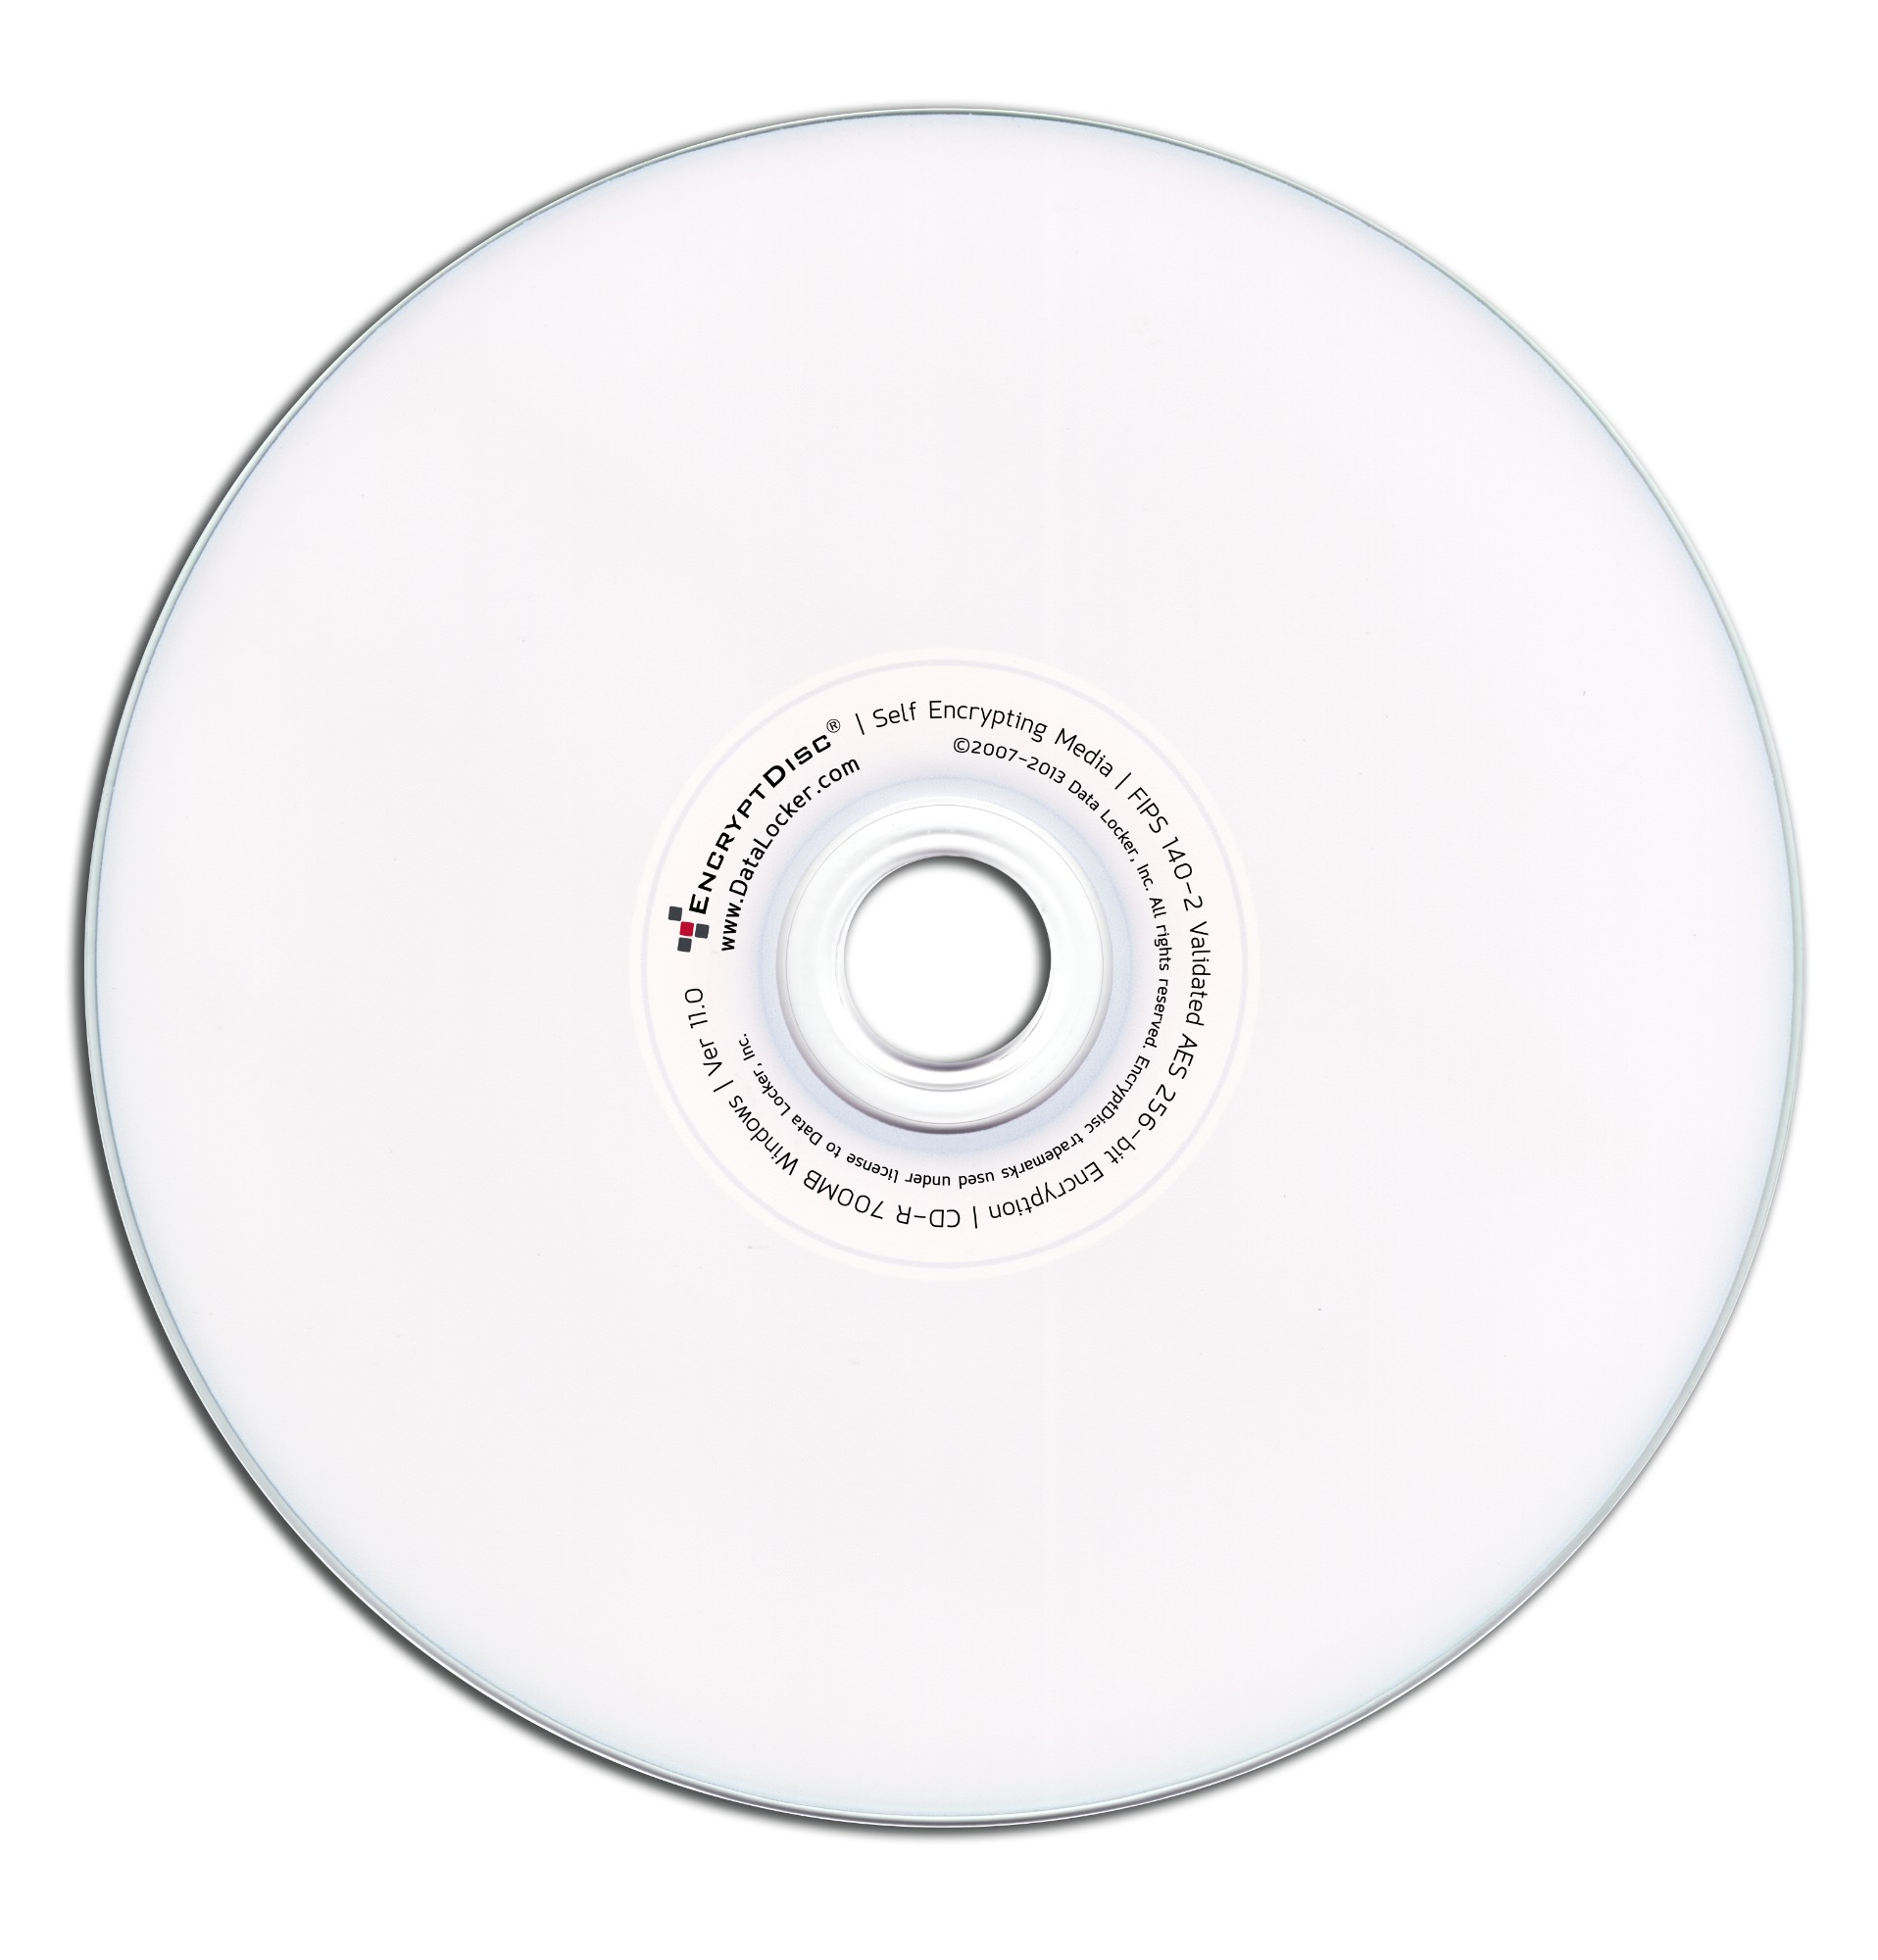 Datalocker Securedisk Self Encrypting Cd 10 Pack